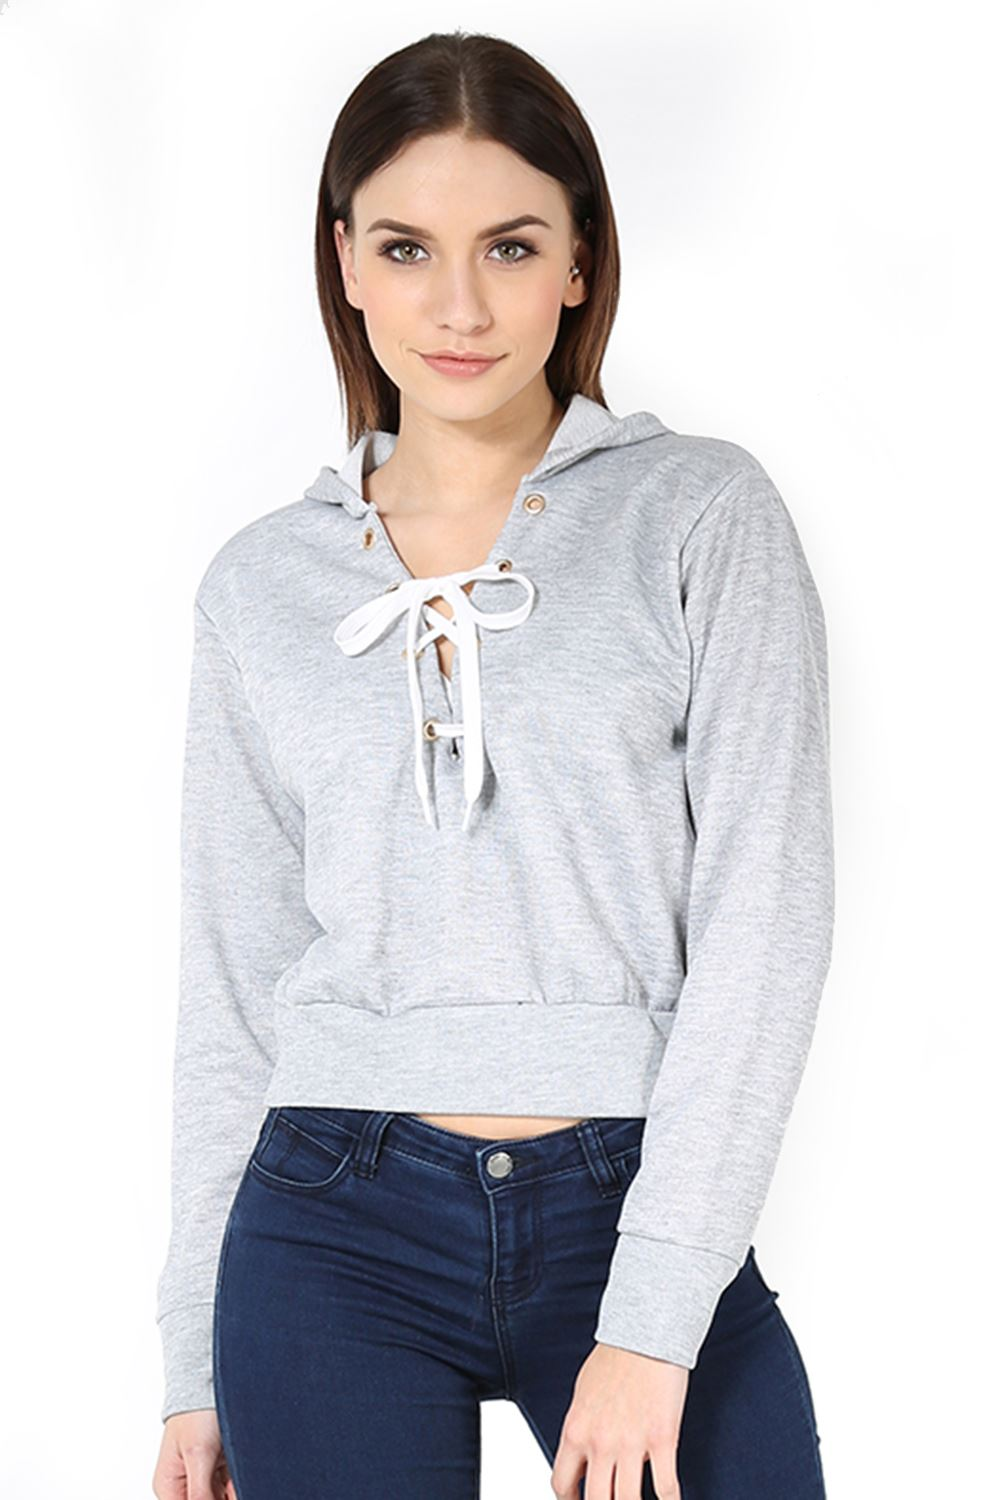 Find great deals on eBay for womens hooded tops. Shop with confidence.